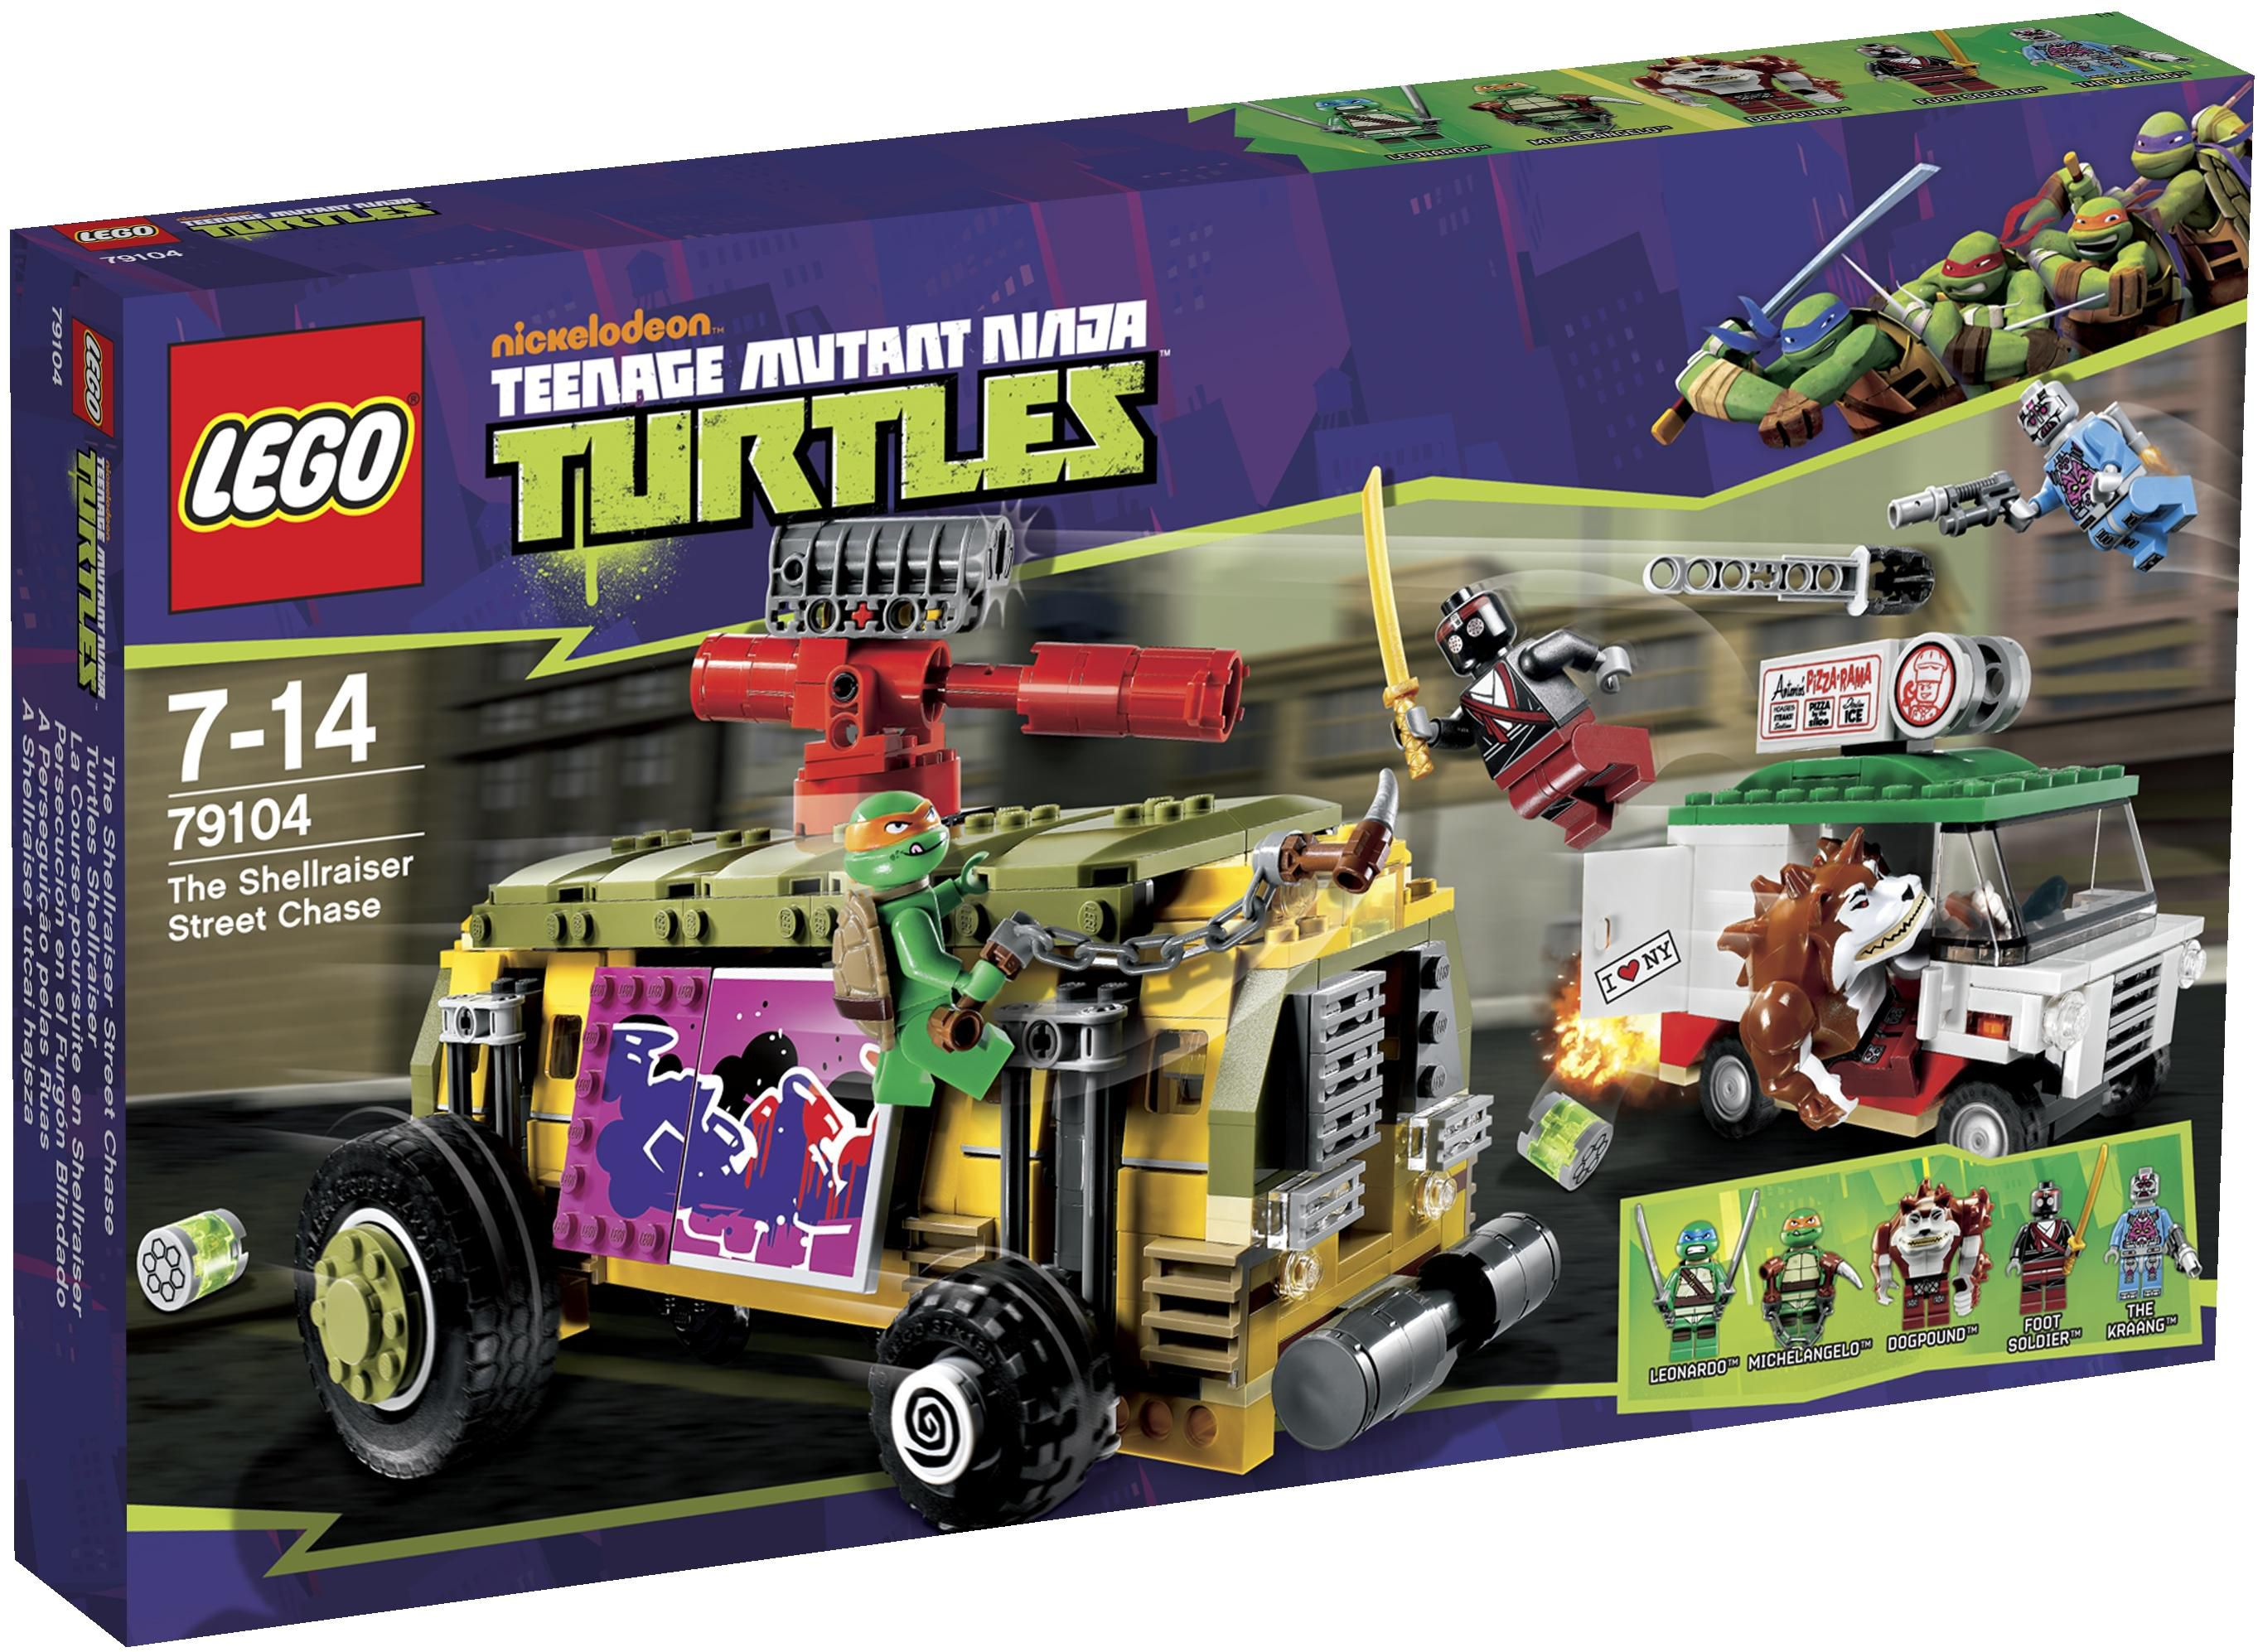 Lego Turtles 79104 The Shellraiser Street Chase